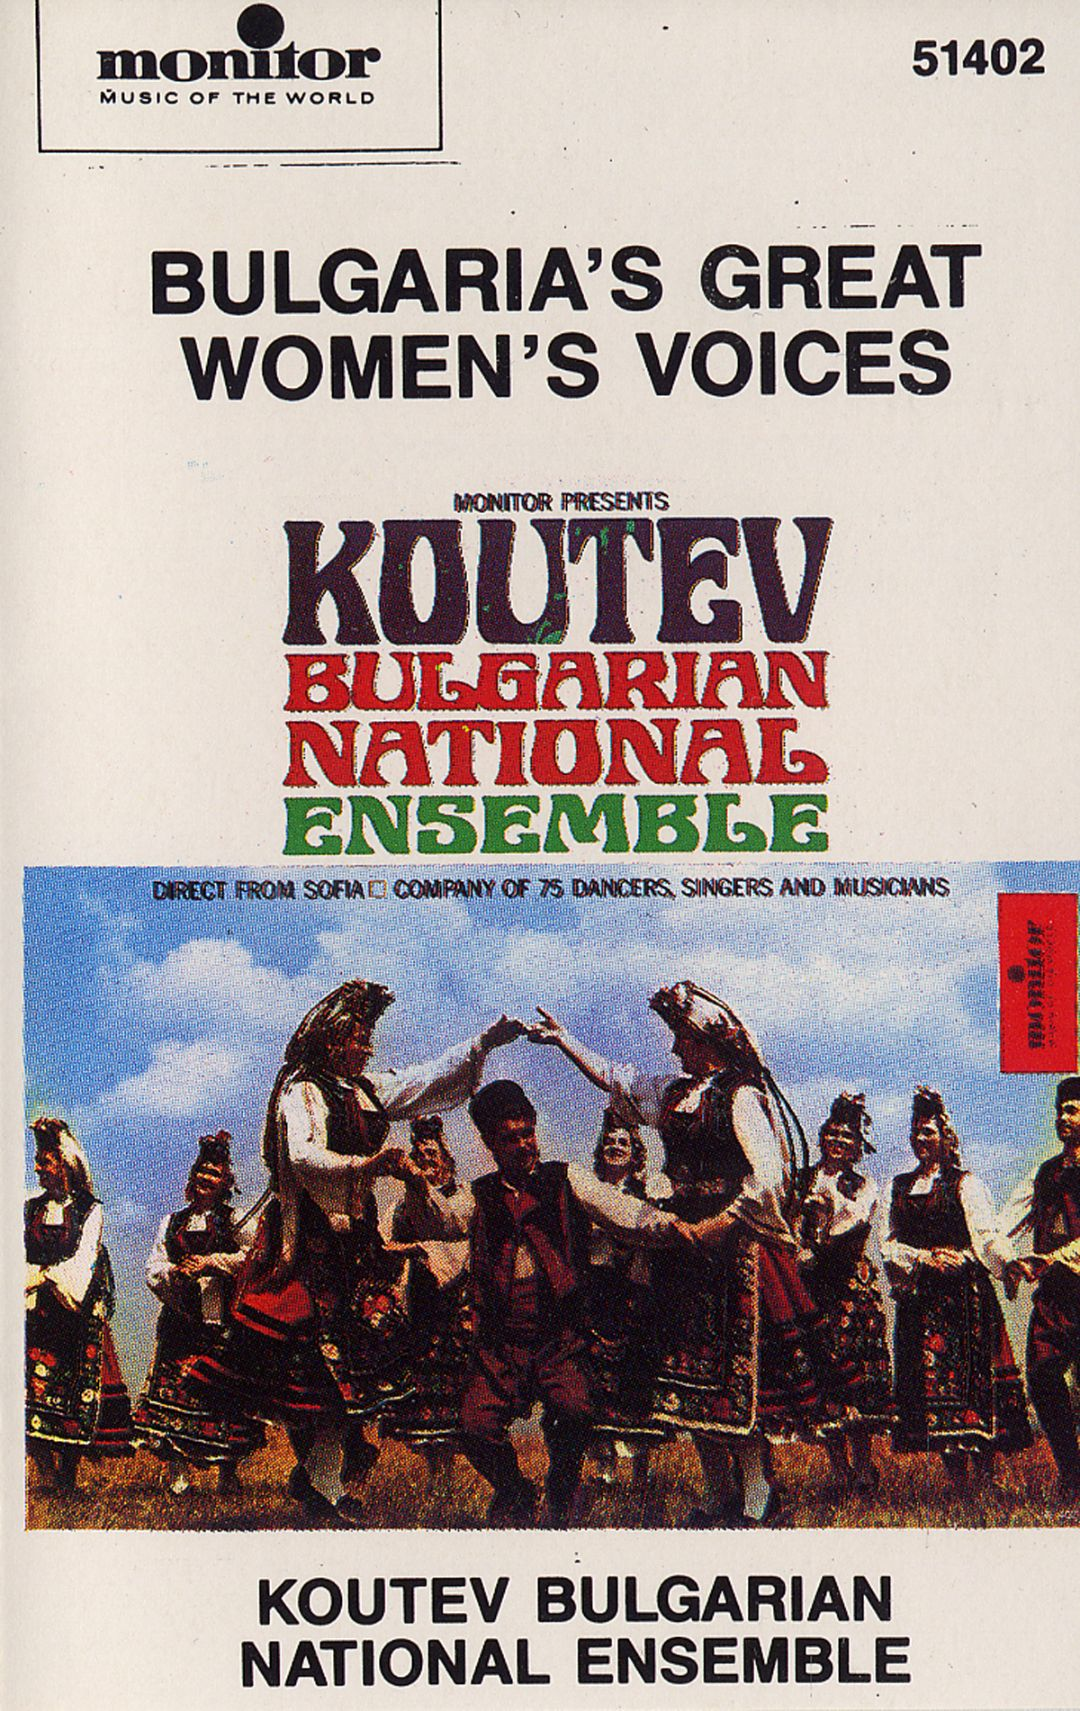 Koutev Bulgarian National Ensemble